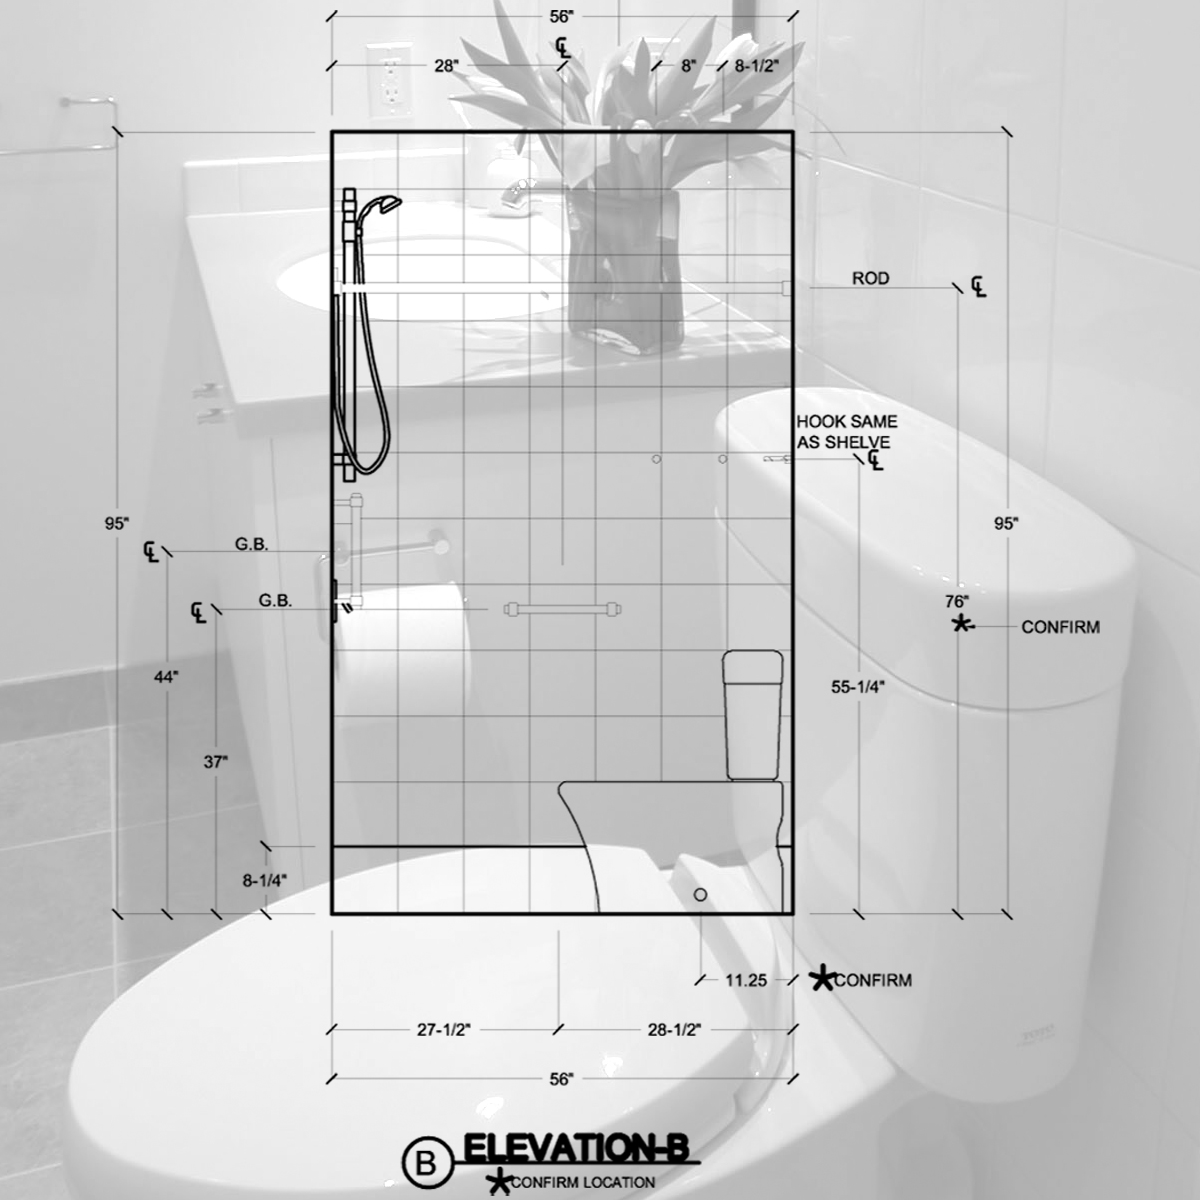 5X7 Bathroom Layout http www pic2fly com 5 X 7 Bathroom html Similiar 4 X.